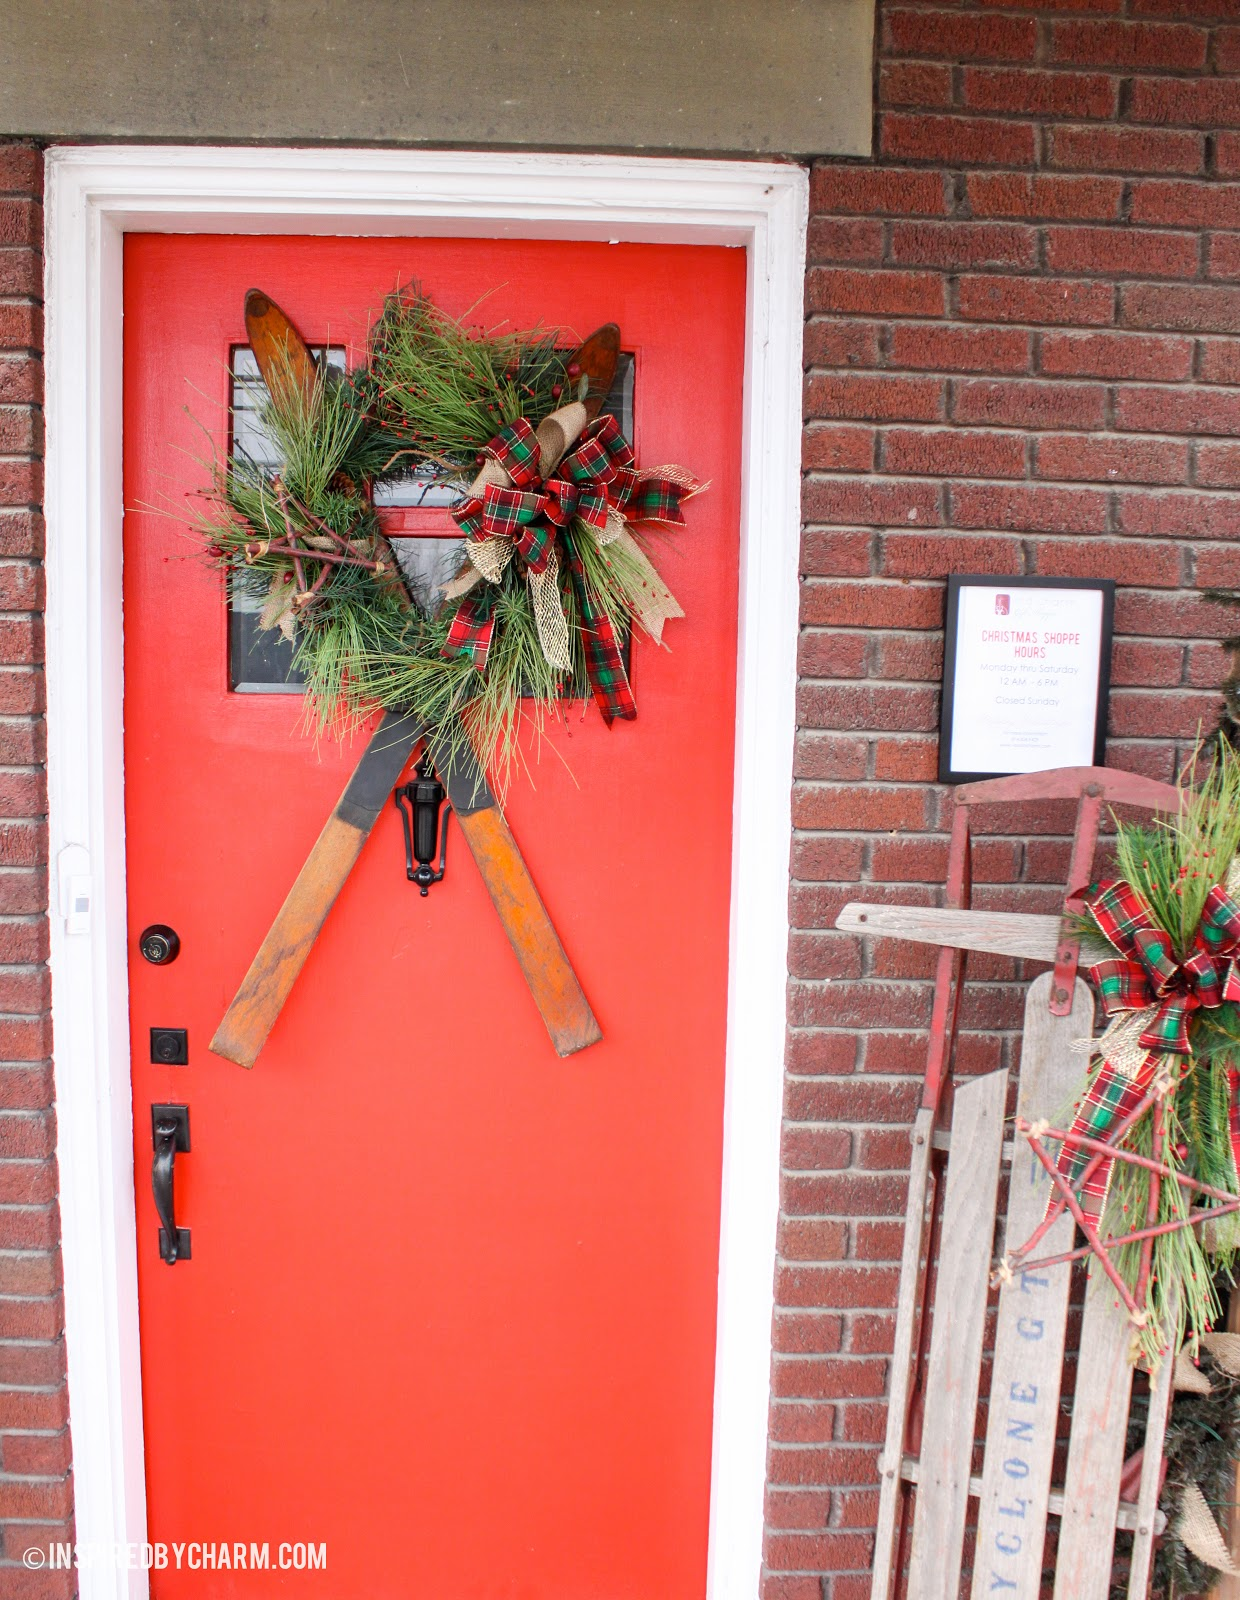 12 days of christmas day 4 wreath sipration for 12 days of christmas door decoration